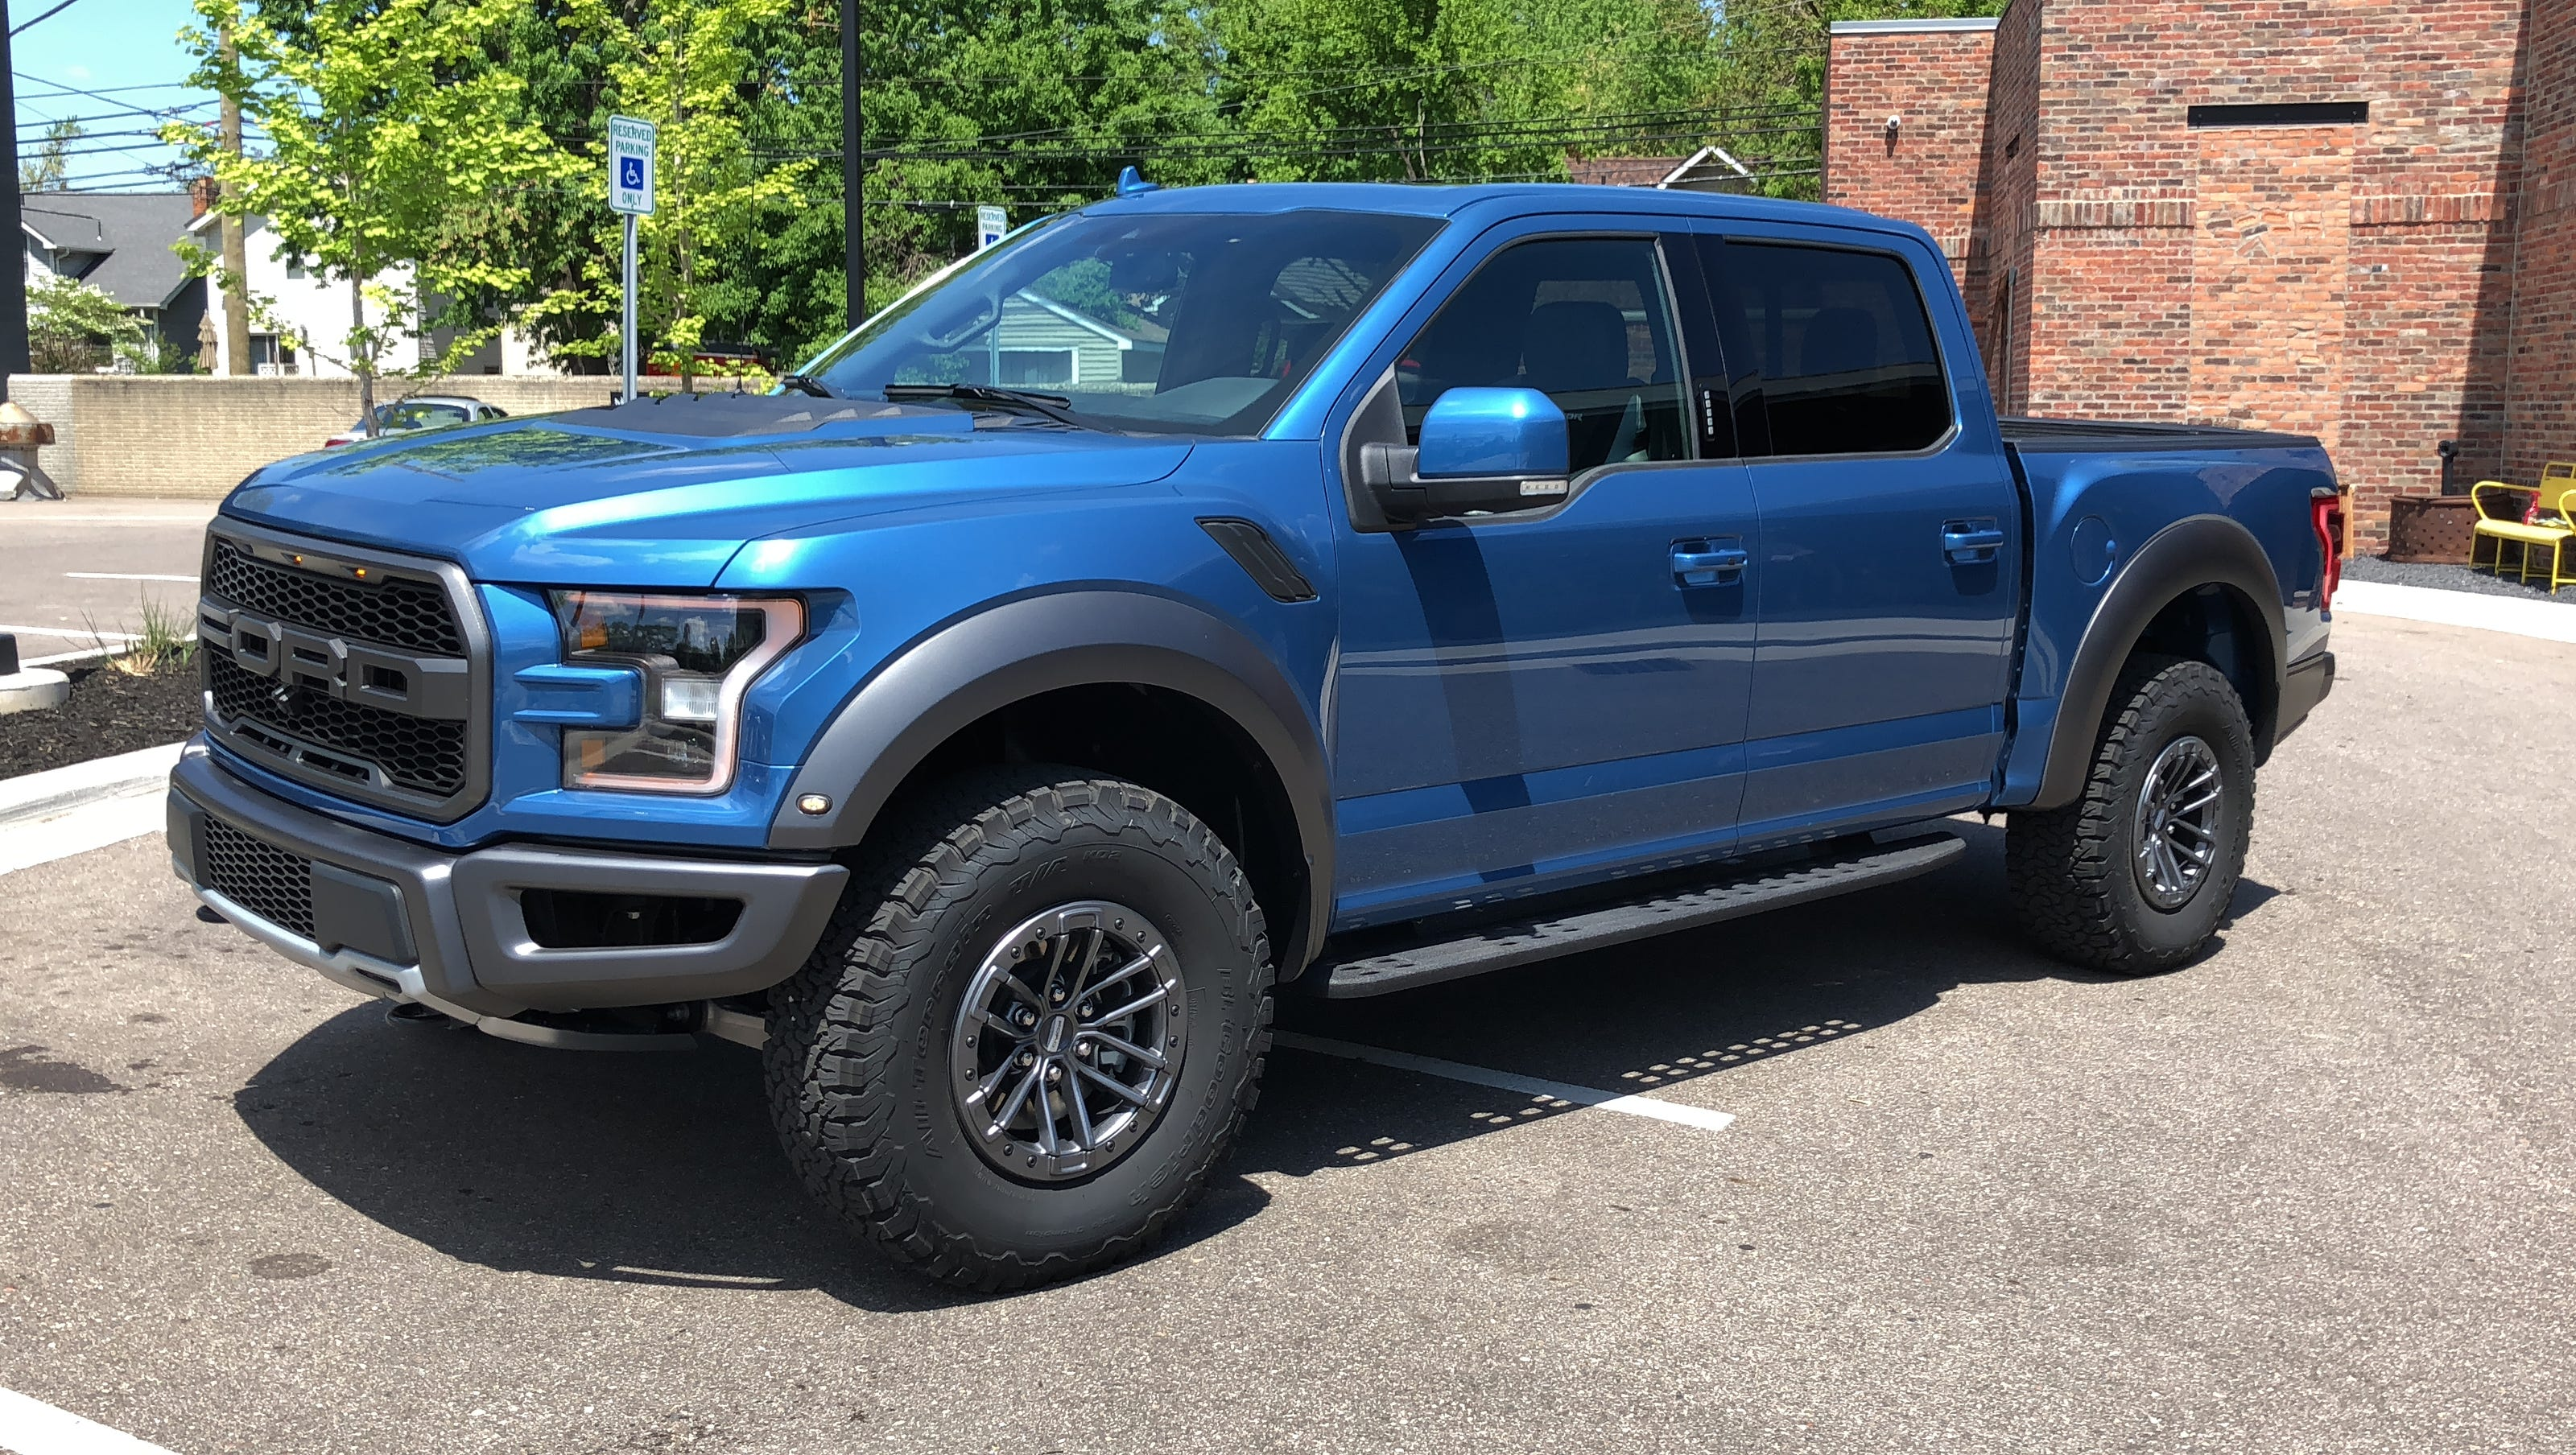 F 150 Truck Bed Covers >> 2019 Ford Raptor adds adaptive shocks, Recaro seats